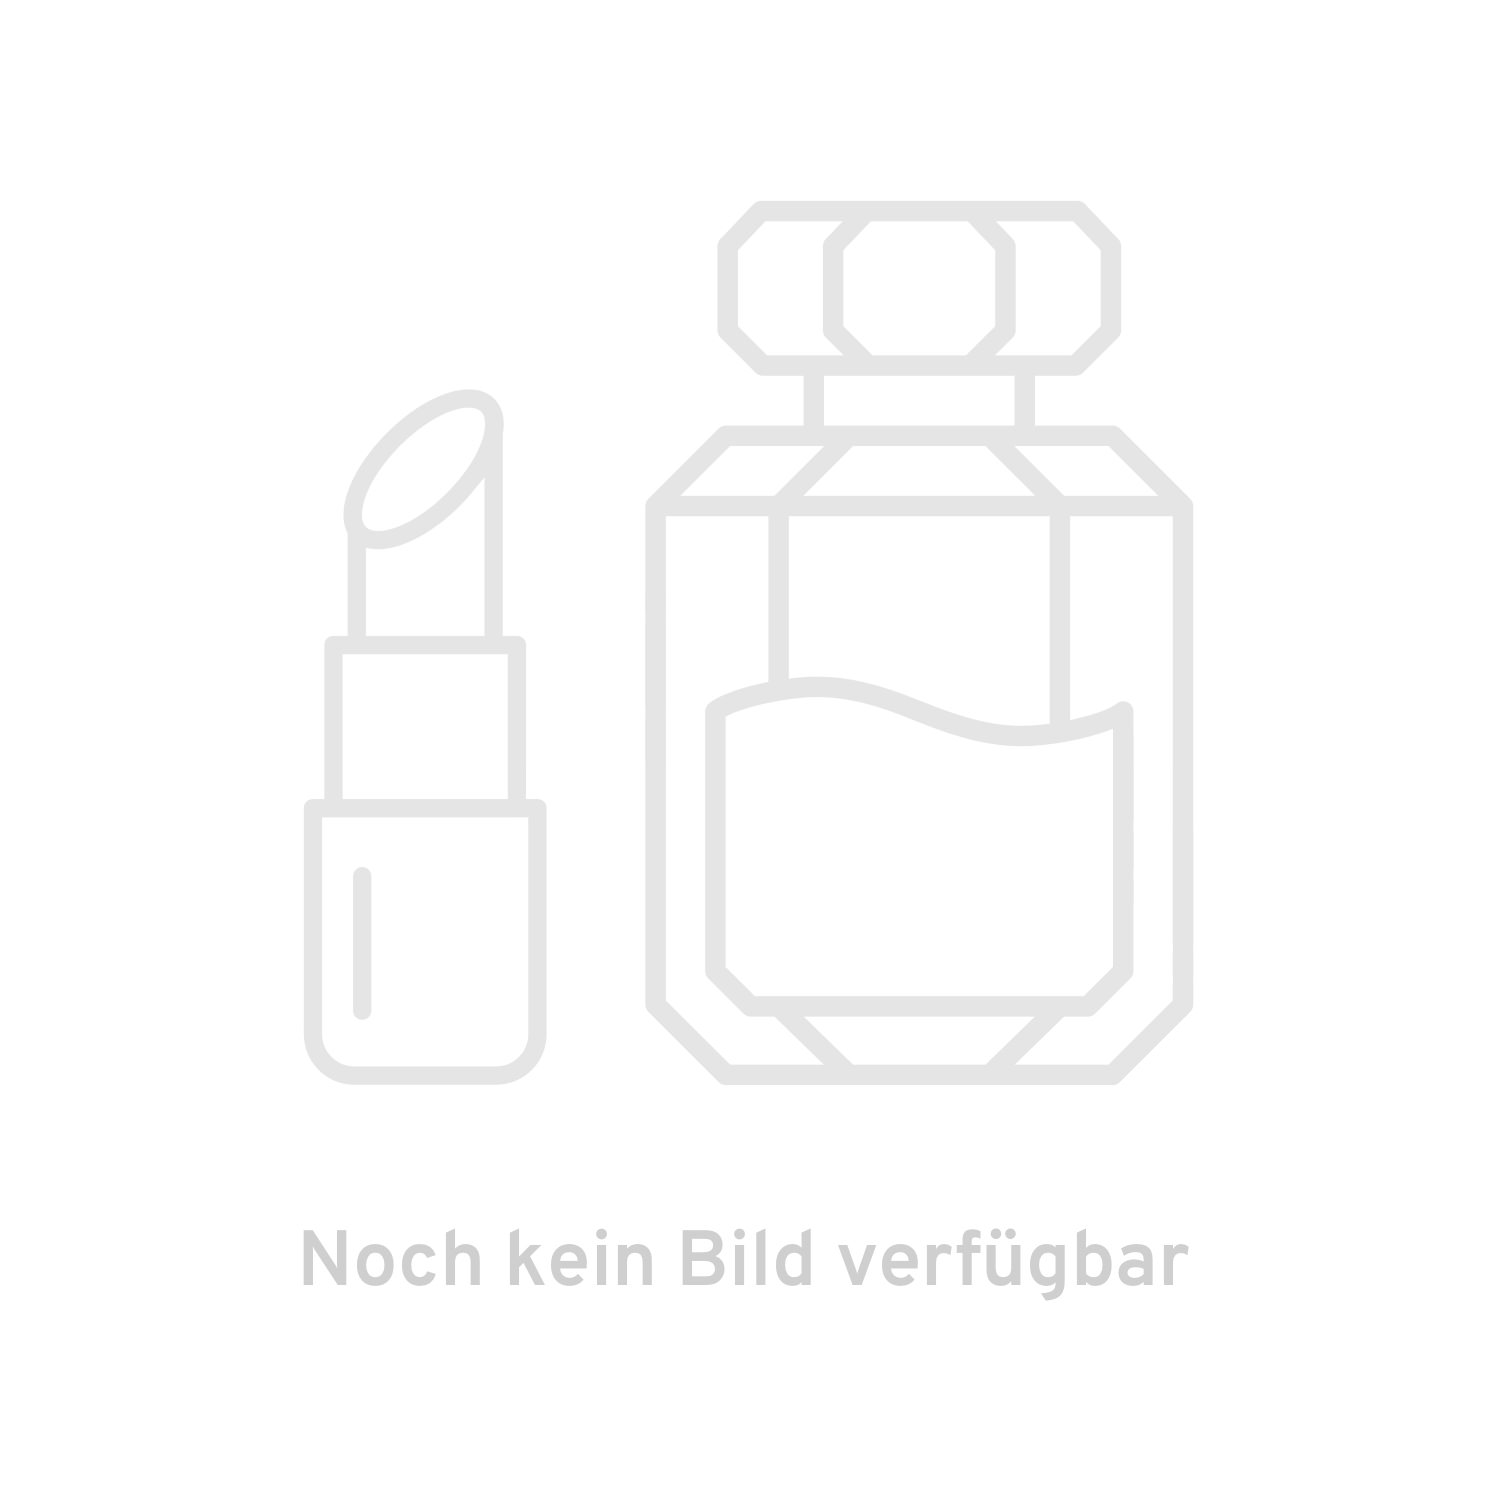 Butterstick Lip Treatment SPF 25 - Berry